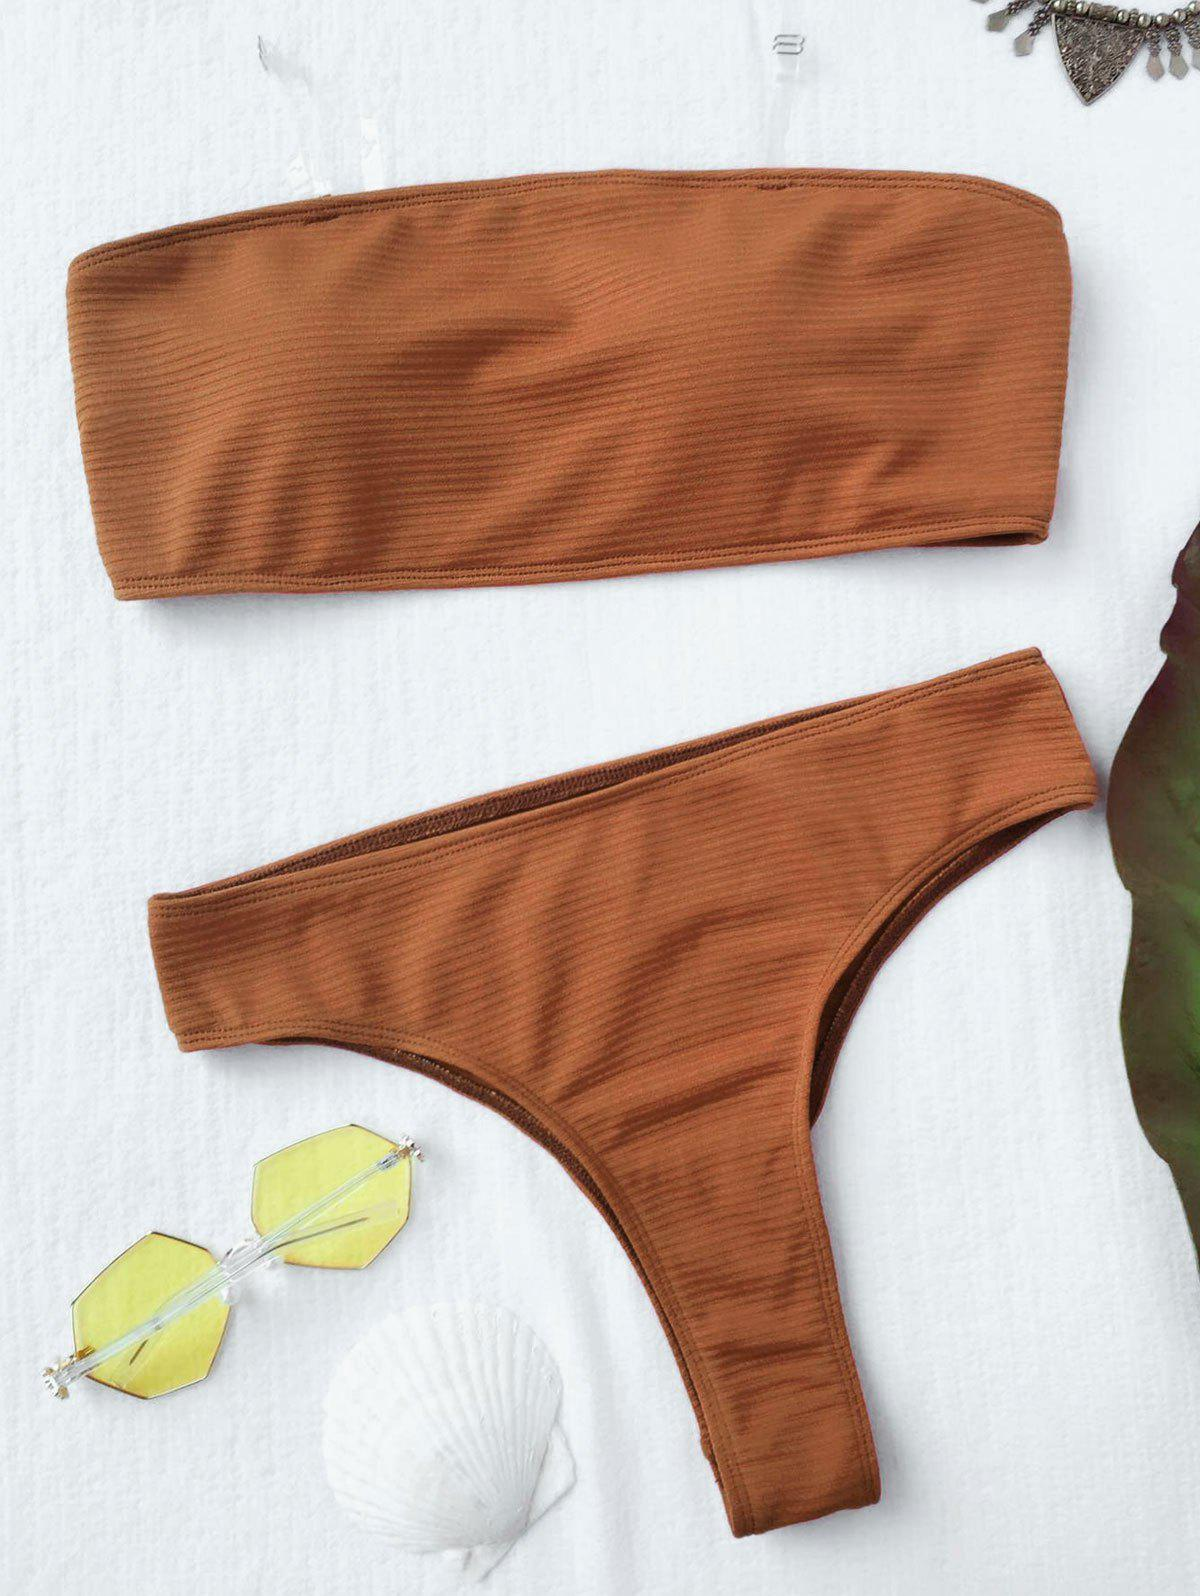 Rib Texture High Leg Bandeau Bikini SetWOMEN<br><br>Size: S; Color: BROWN; Swimwear Type: Bikini; Gender: For Women; Material: Cotton,Polyester,Spandex; Bra Style: Padded; Support Type: Wire Free; Neckline: Bandeau Collar; Pattern Type: Solid; Waist: Natural; Elasticity: Elastic; Weight: 0.2000kg; Package Contents: 1 x Top  1 x Bottoms;